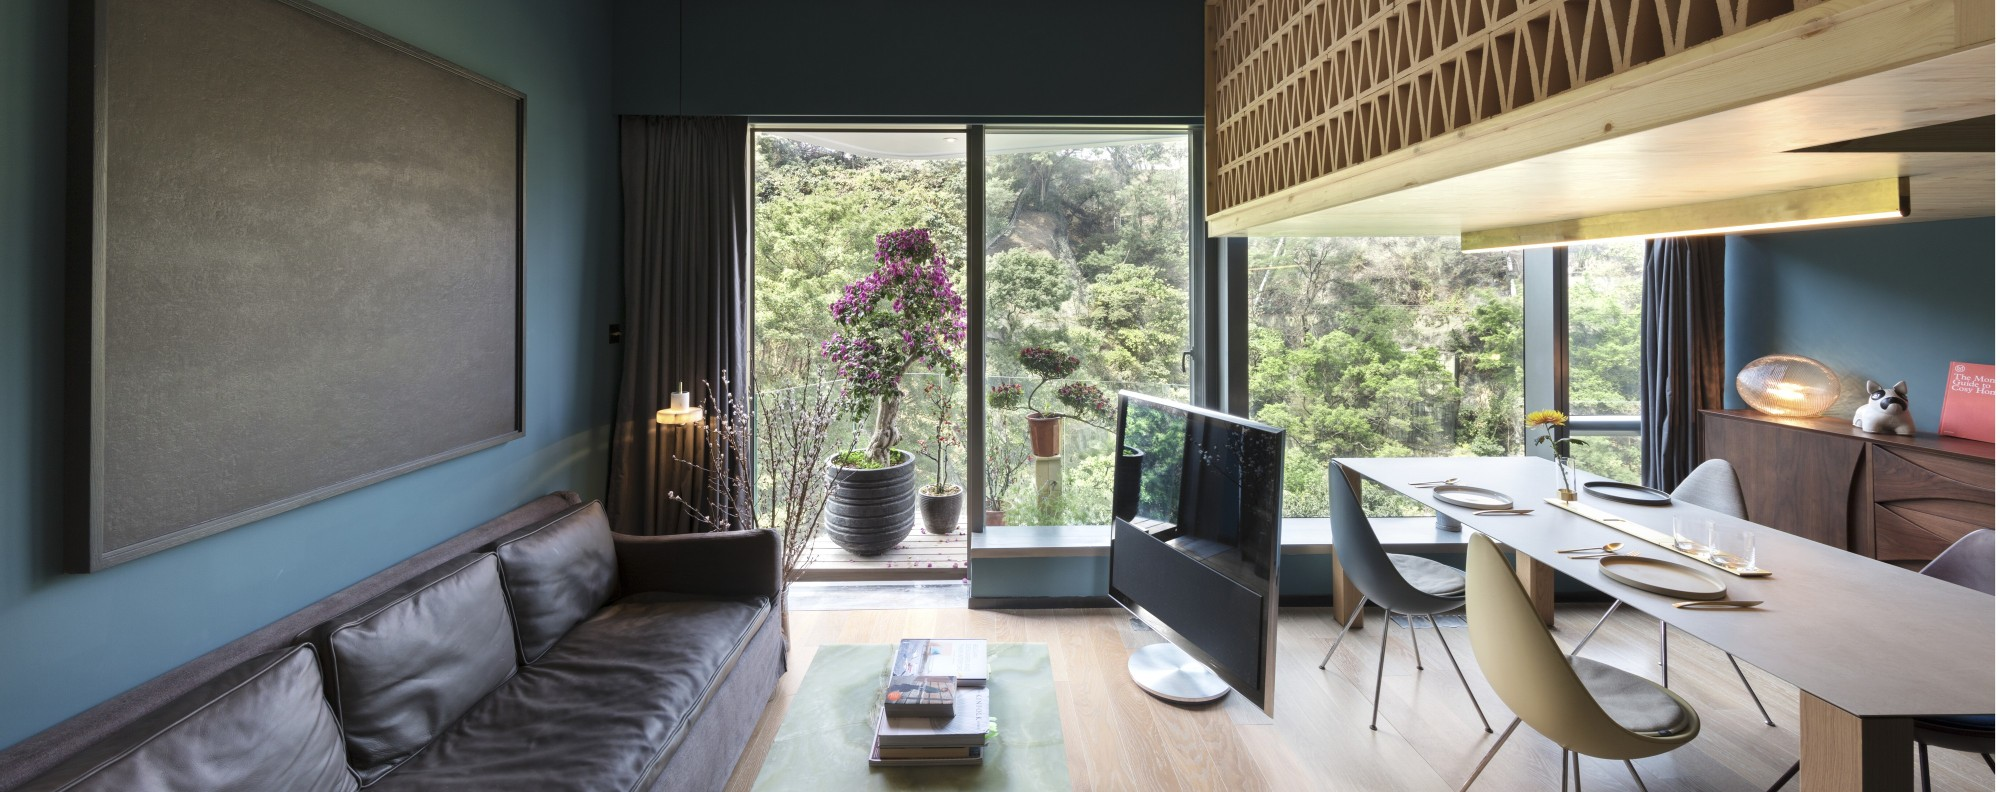 Nelson Chow Took Inspiration From The Trees Outside This 30th Floor Flat In  Kowloon To